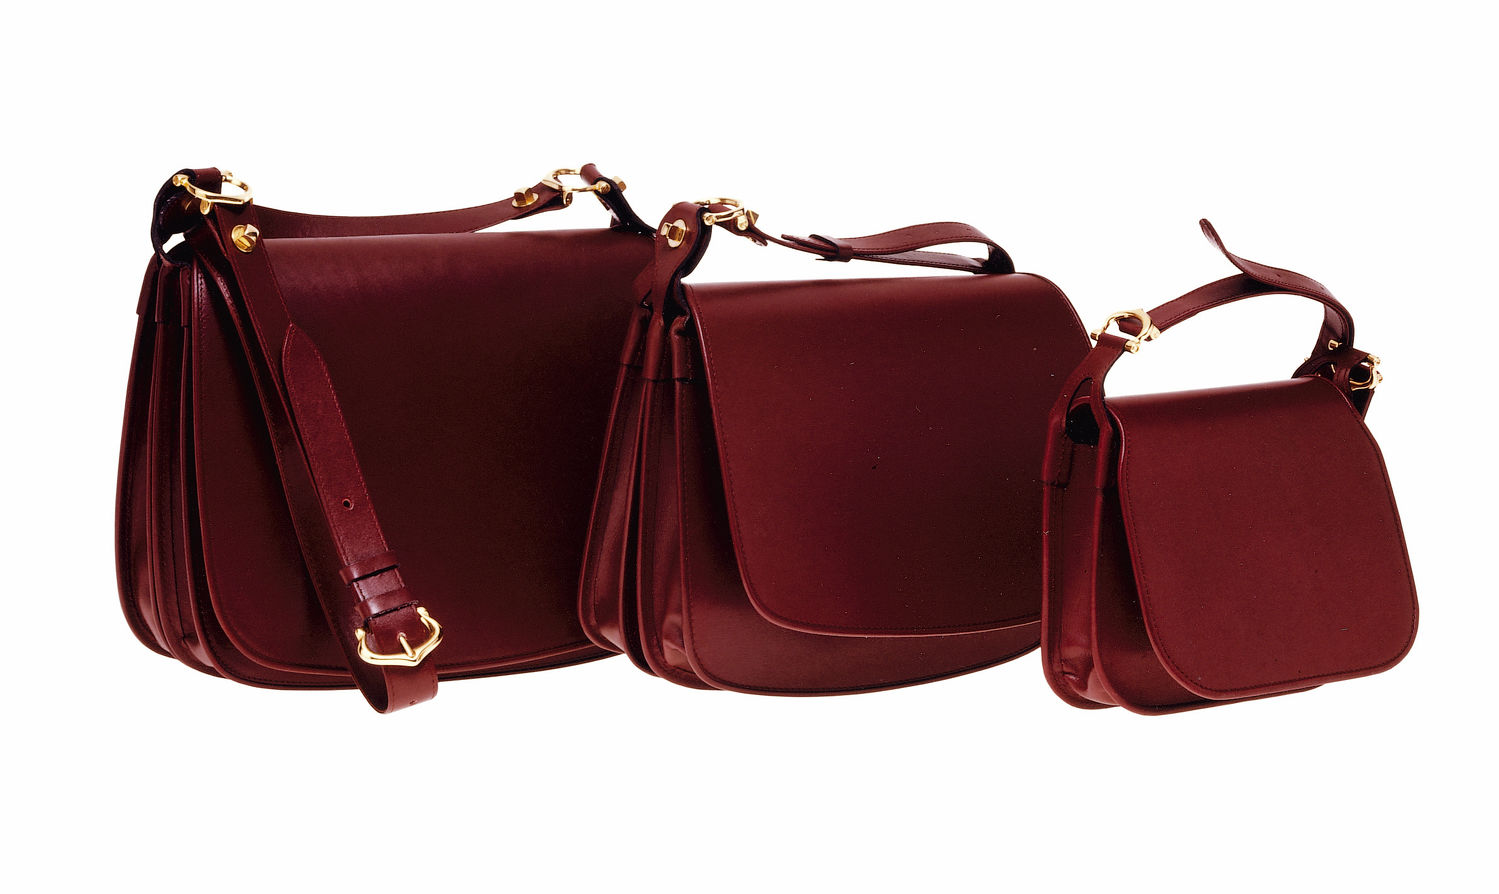 The Cartier Carnassière bag in Bordeaux-red leather